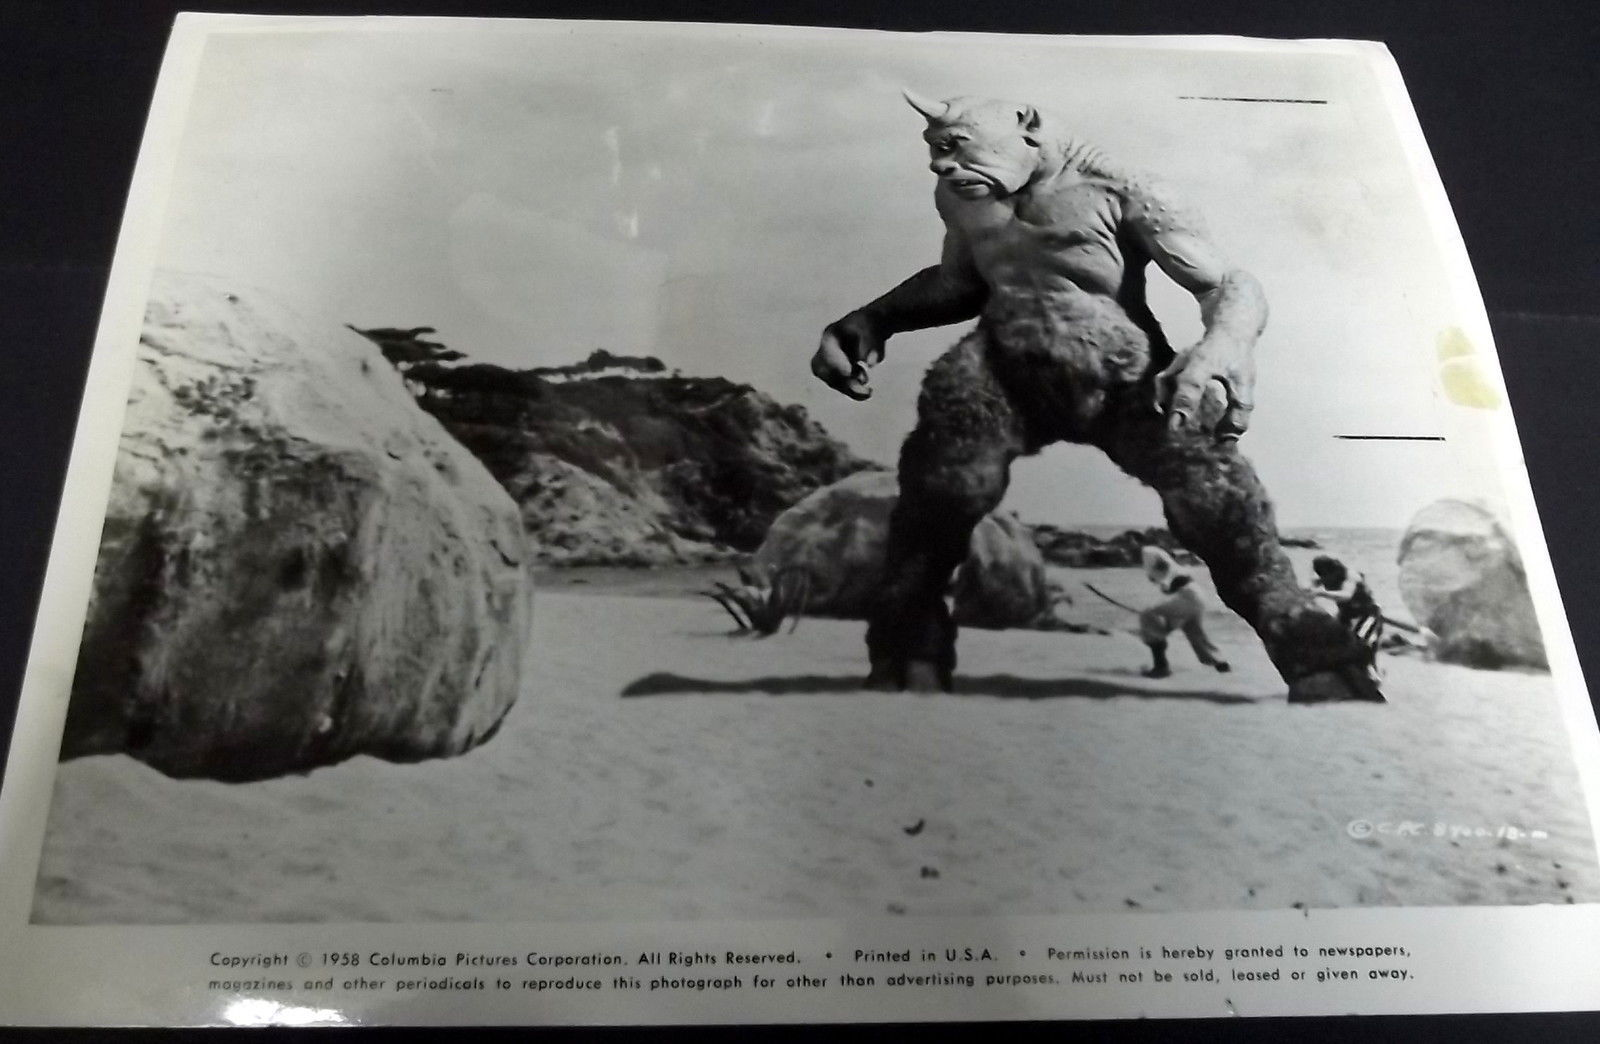 RAY HARRYHAUSEN (7TH VOYAGE OF SINBAD) ORIG,1958 ANIMATION STILL (CLASSIC) WOW